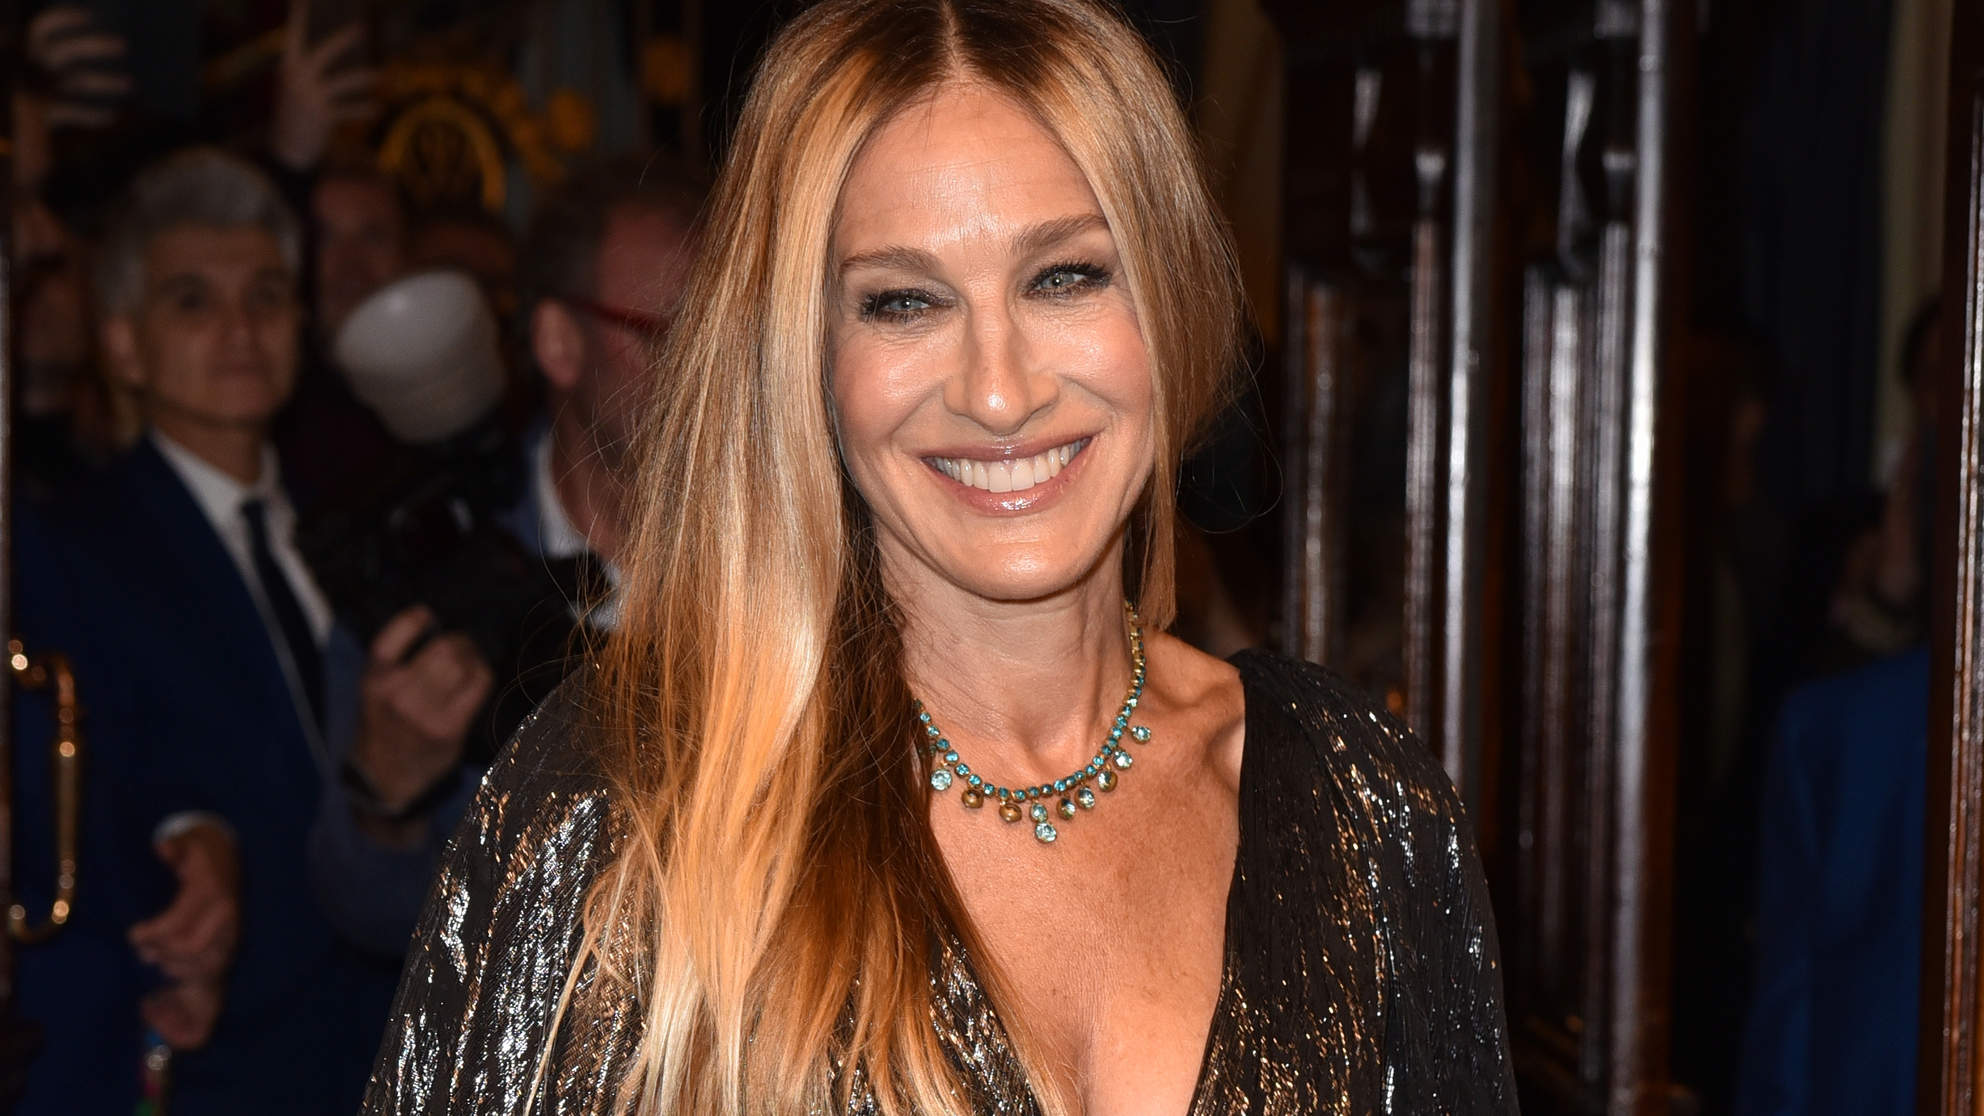 Sarah Jessica Parker Has Been Wearing This Classic Swimsuit for 5 Years